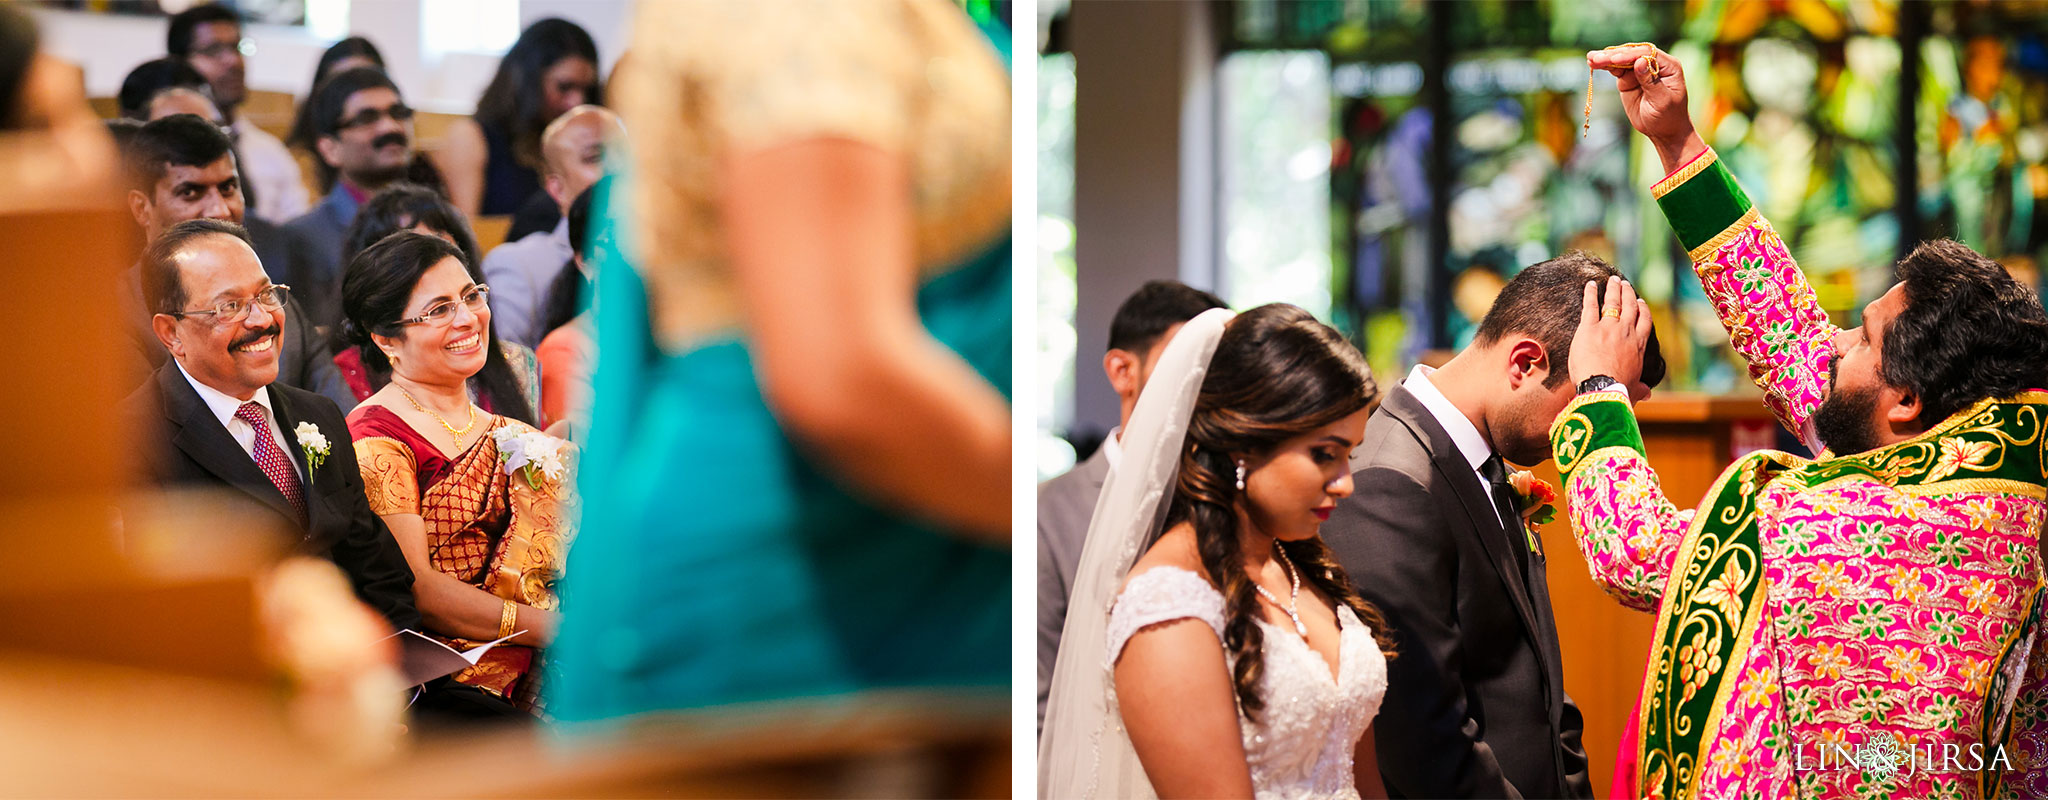 22 claremont united church of christ indian wedding photography